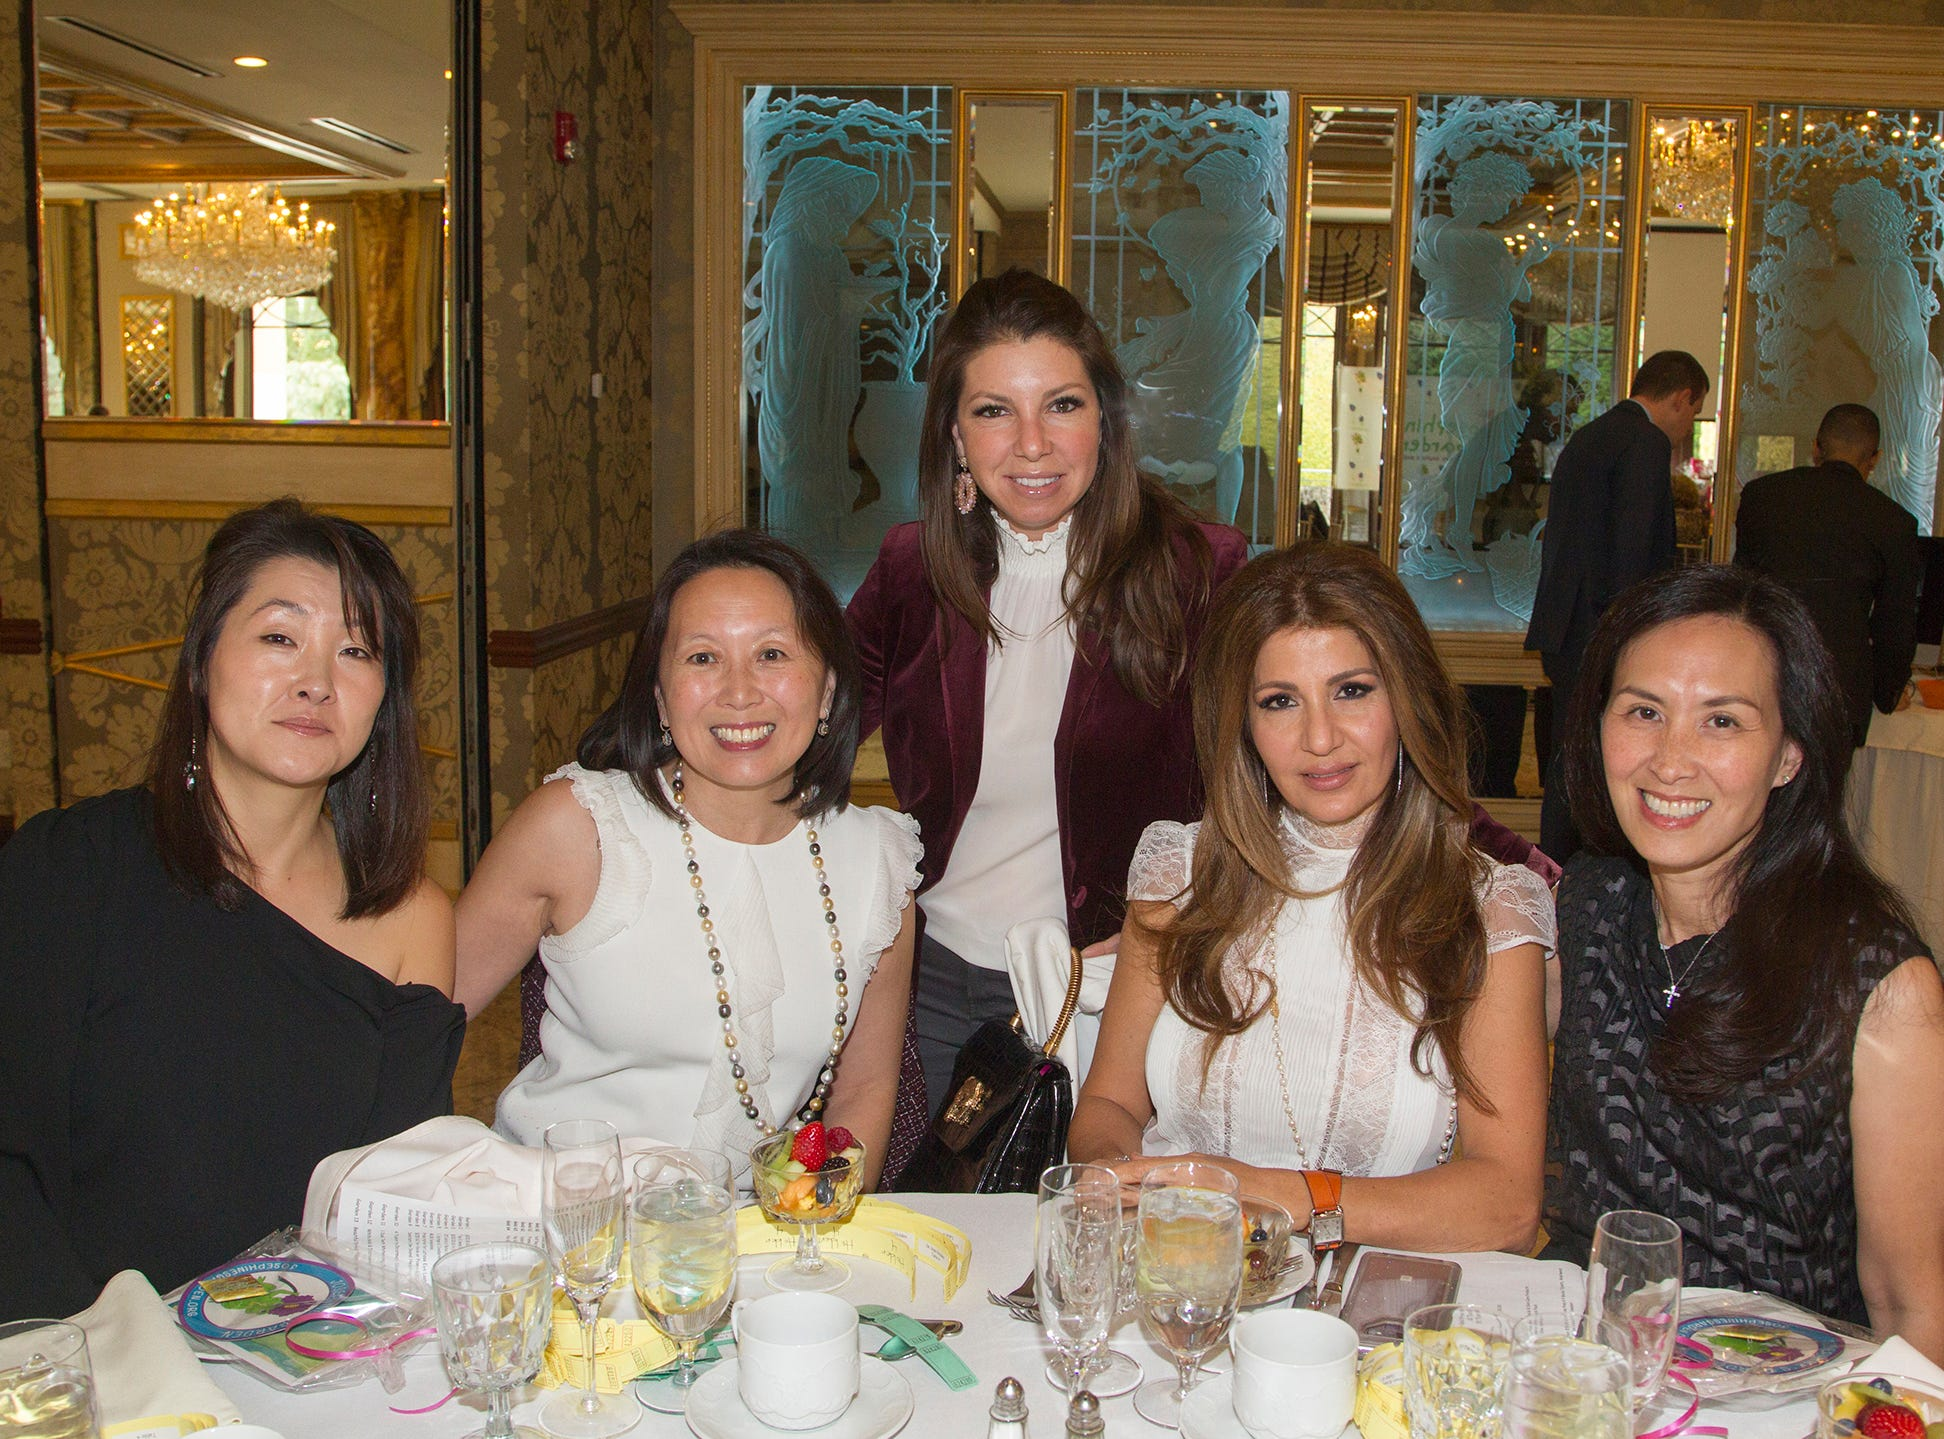 Jackie Park,  Jean Holden, Jaime Butta, Susan Koushatjian, Jean Hom. Josephine's Garden, part of Hackensack Meridian Health, held its luncheon gala at Season's in Washington Township. The mission of this organization is to provide a place of respite, joy and hope to children battling cancer. 11/14/2018